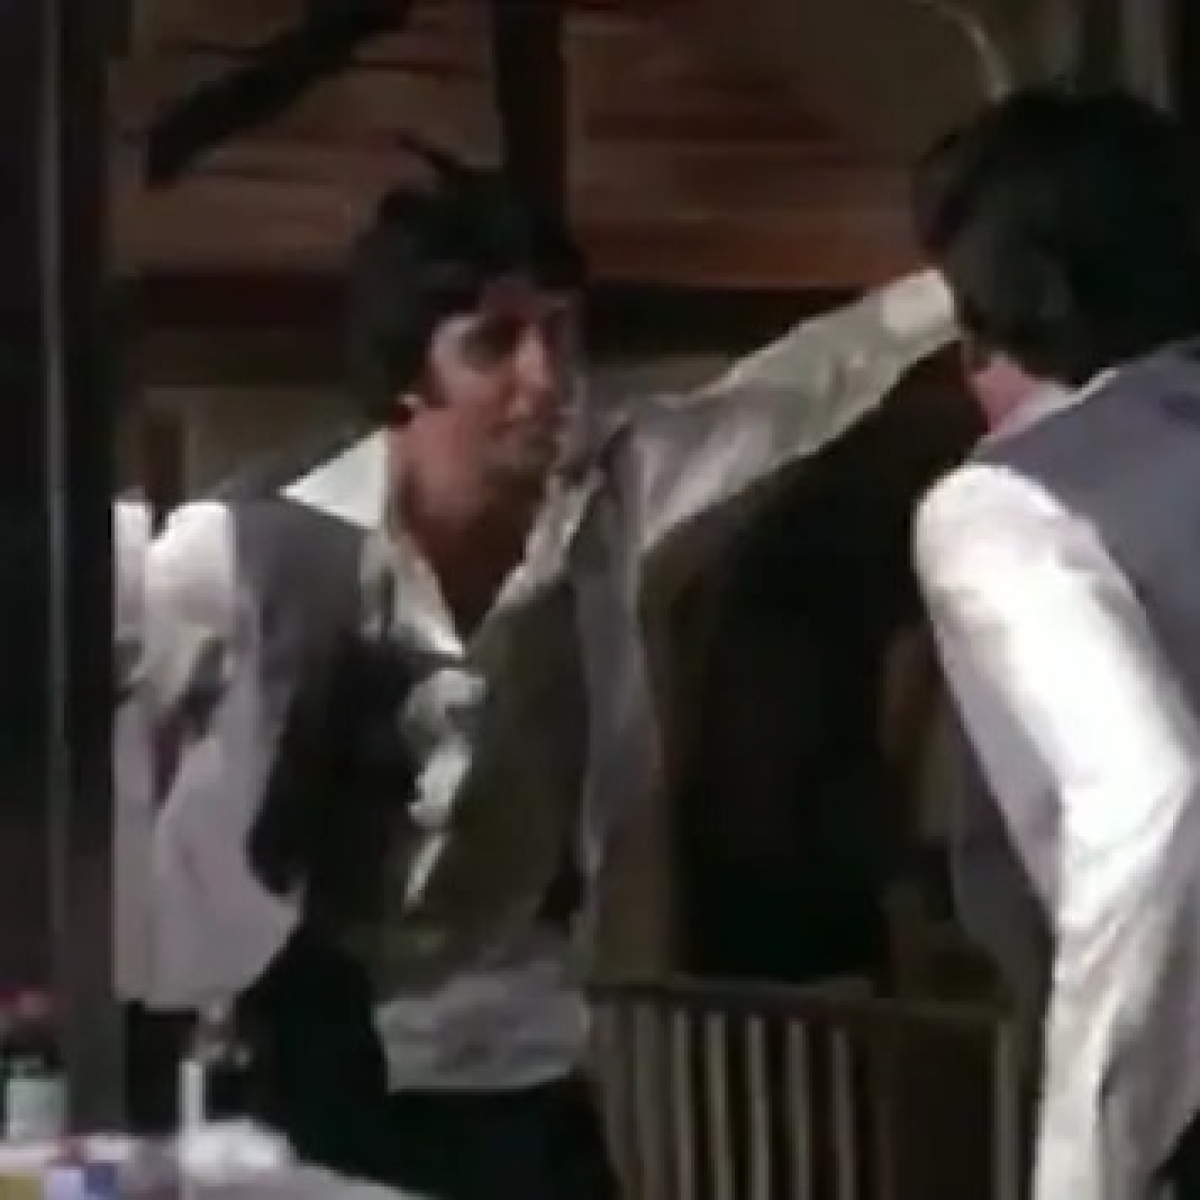 'The show must go on': Amitabh Bachchan tries to cheer fans up by sharing video from 'Amar Akbar Anthony'